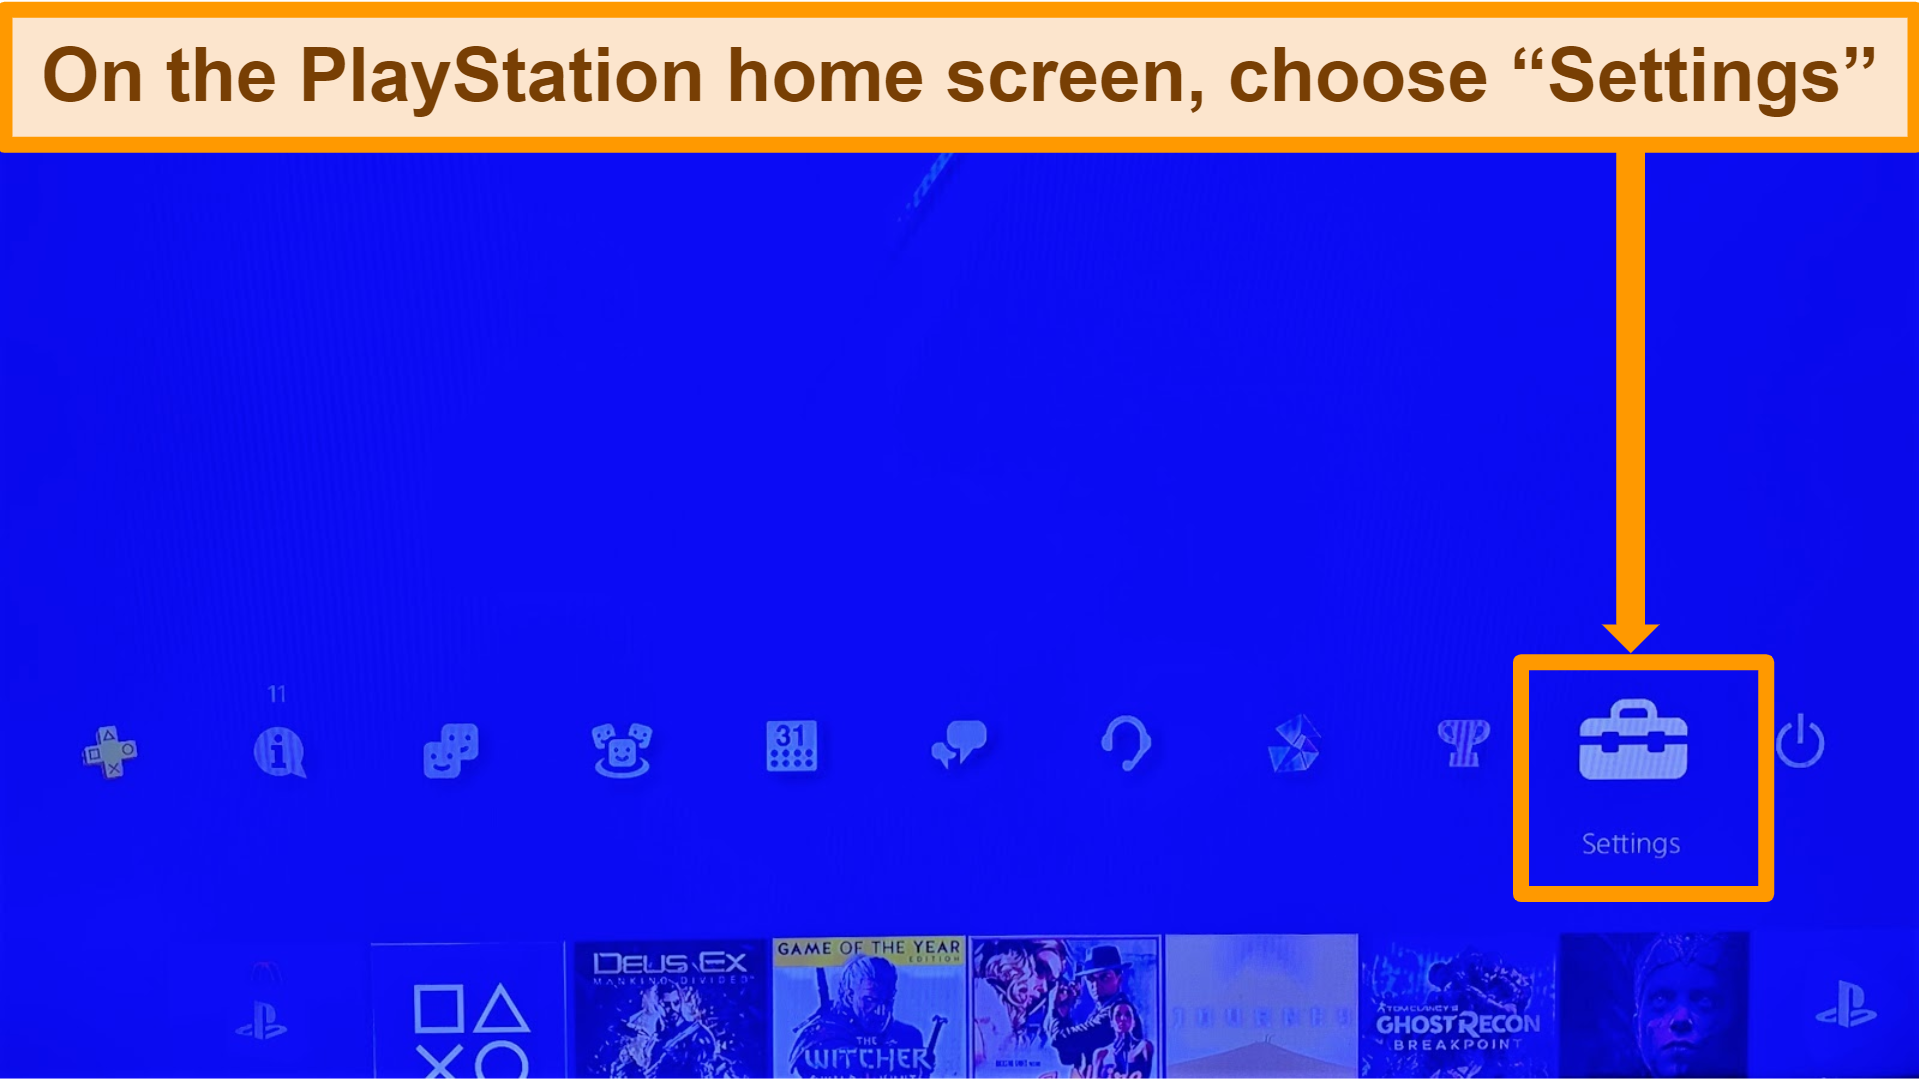 Screenshot of PlayStation home screen with